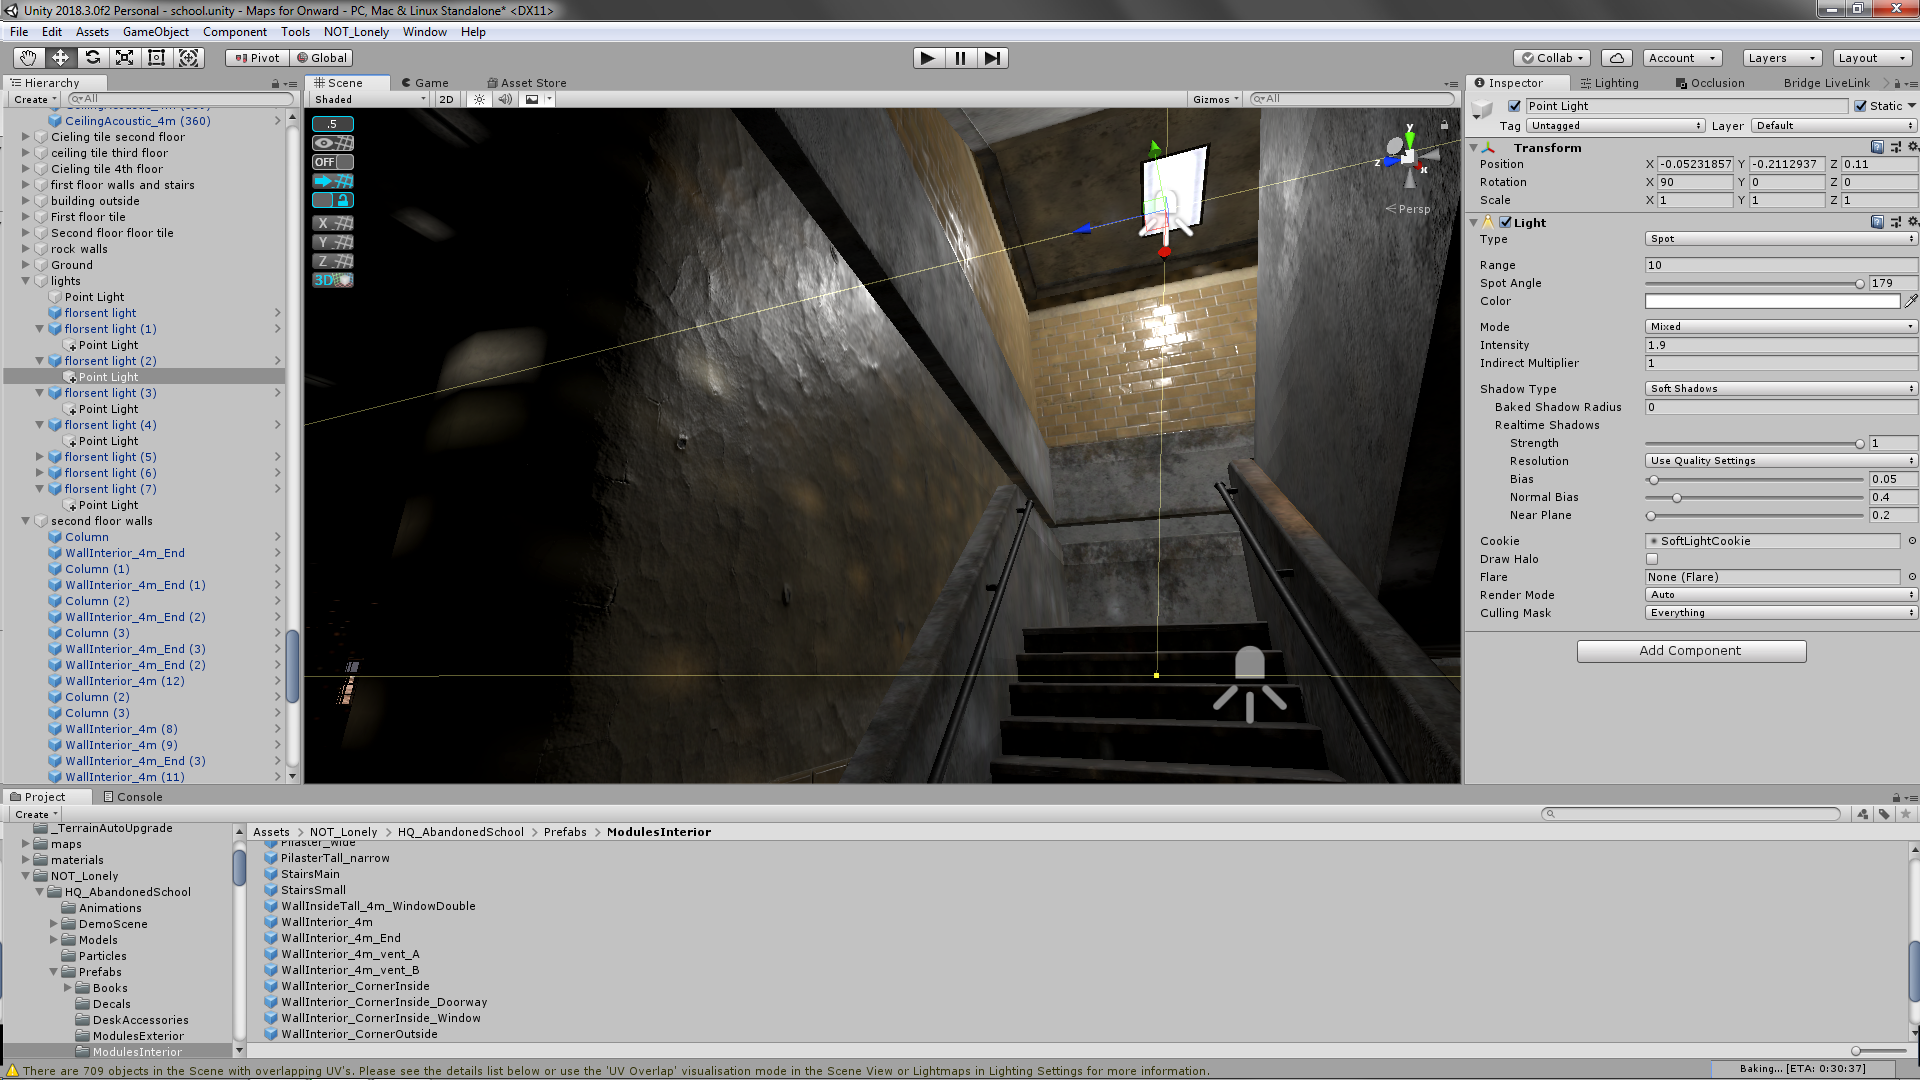 specular turning on and off based on light possition - Unity Forum